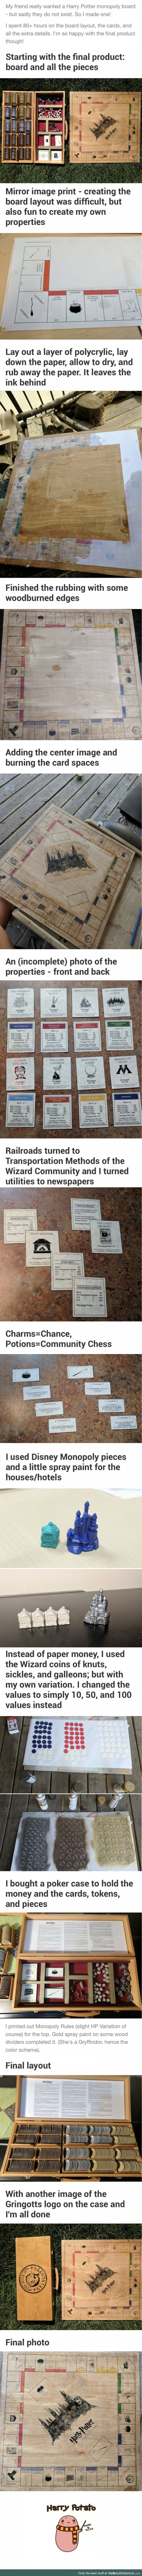 Monopoly Harry Potter board